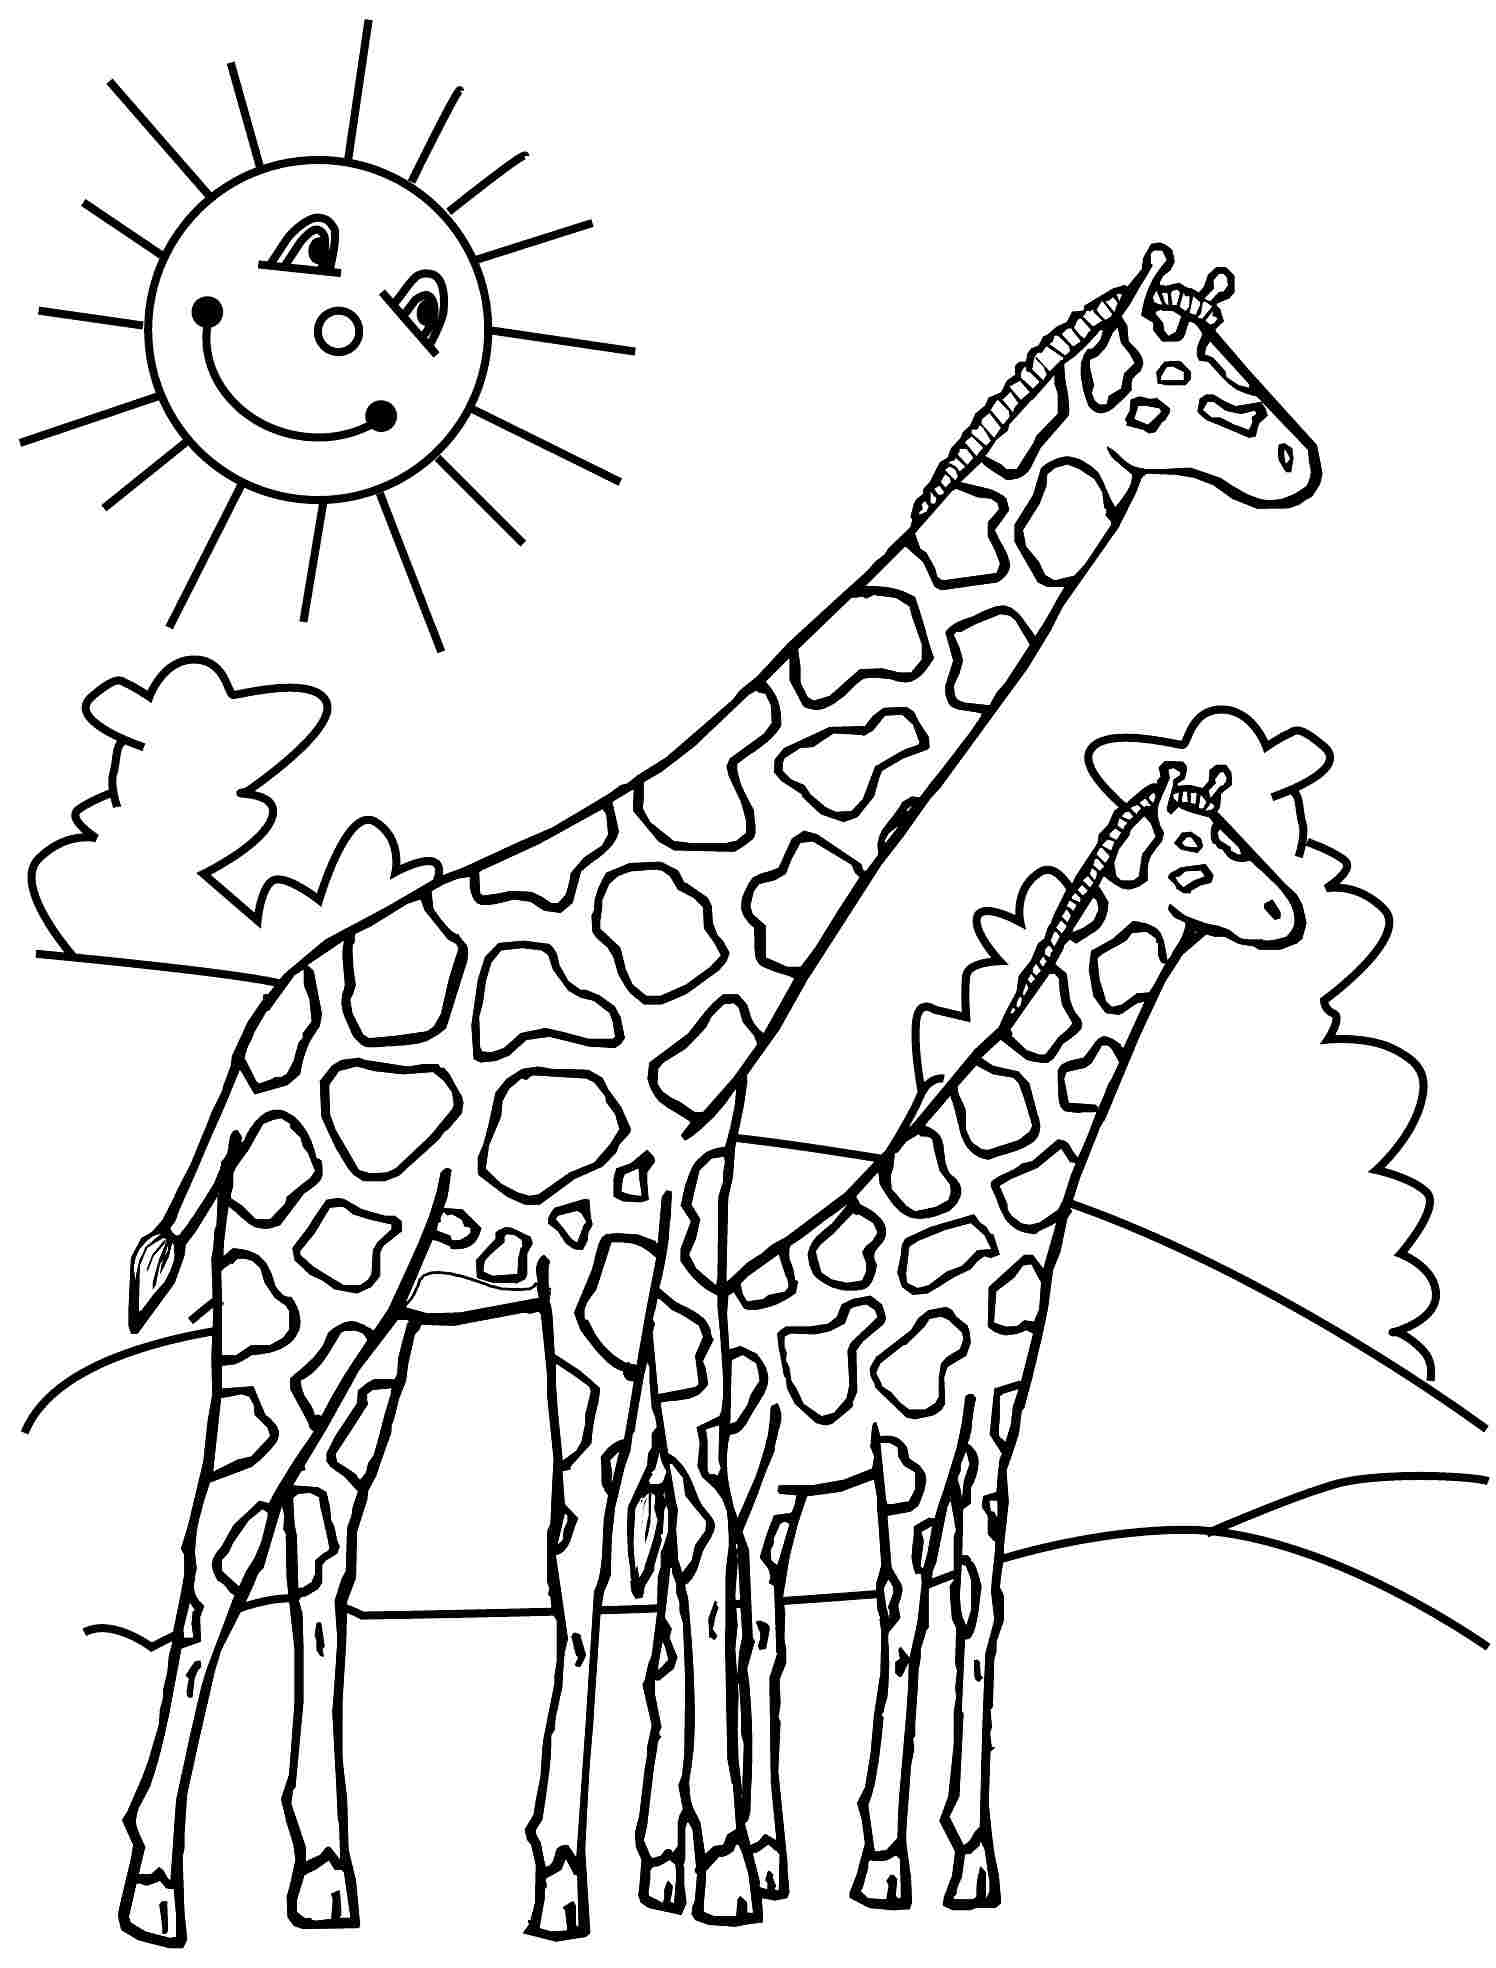 color in pictures cartoon coloring pages disney cartoon coloring pages in pictures color